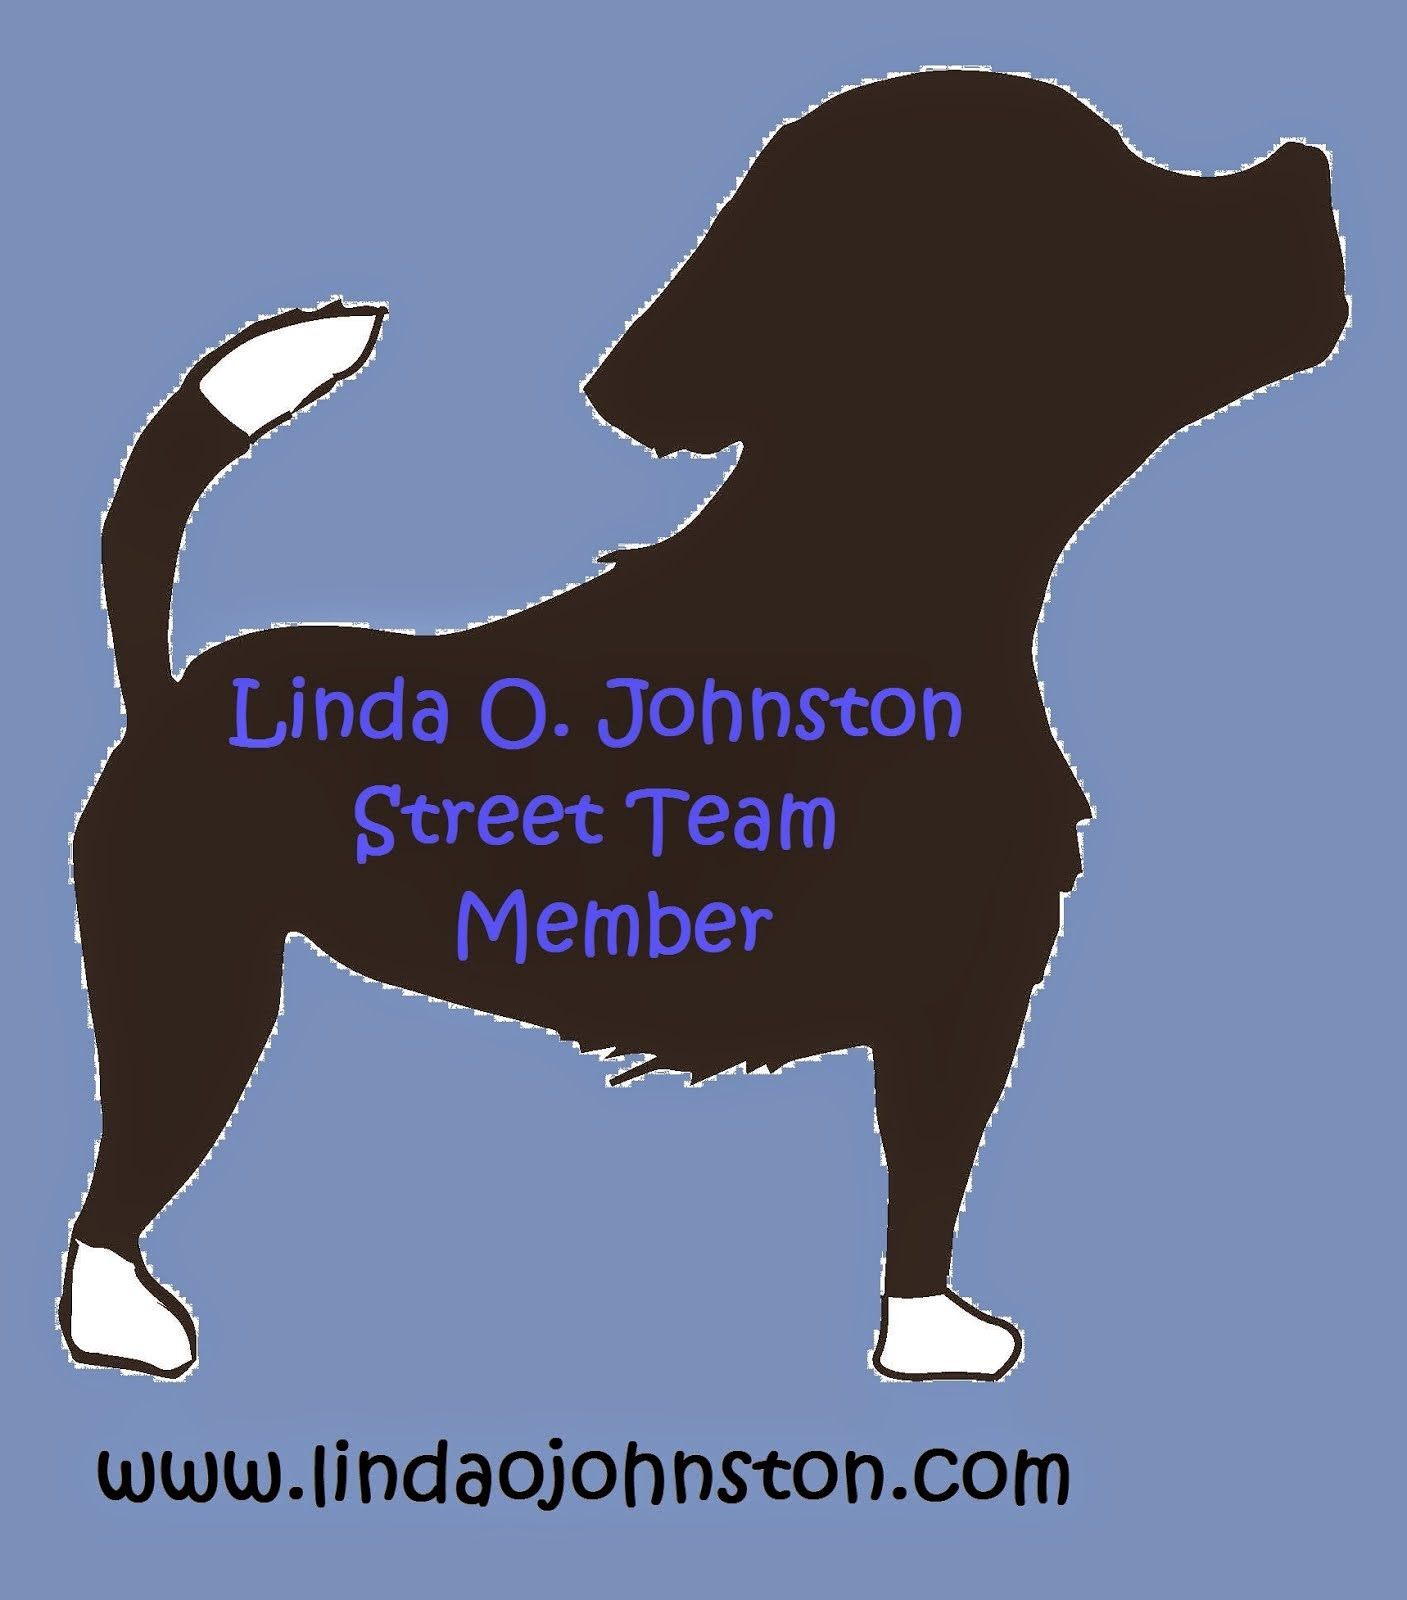 Linda O. Johnston